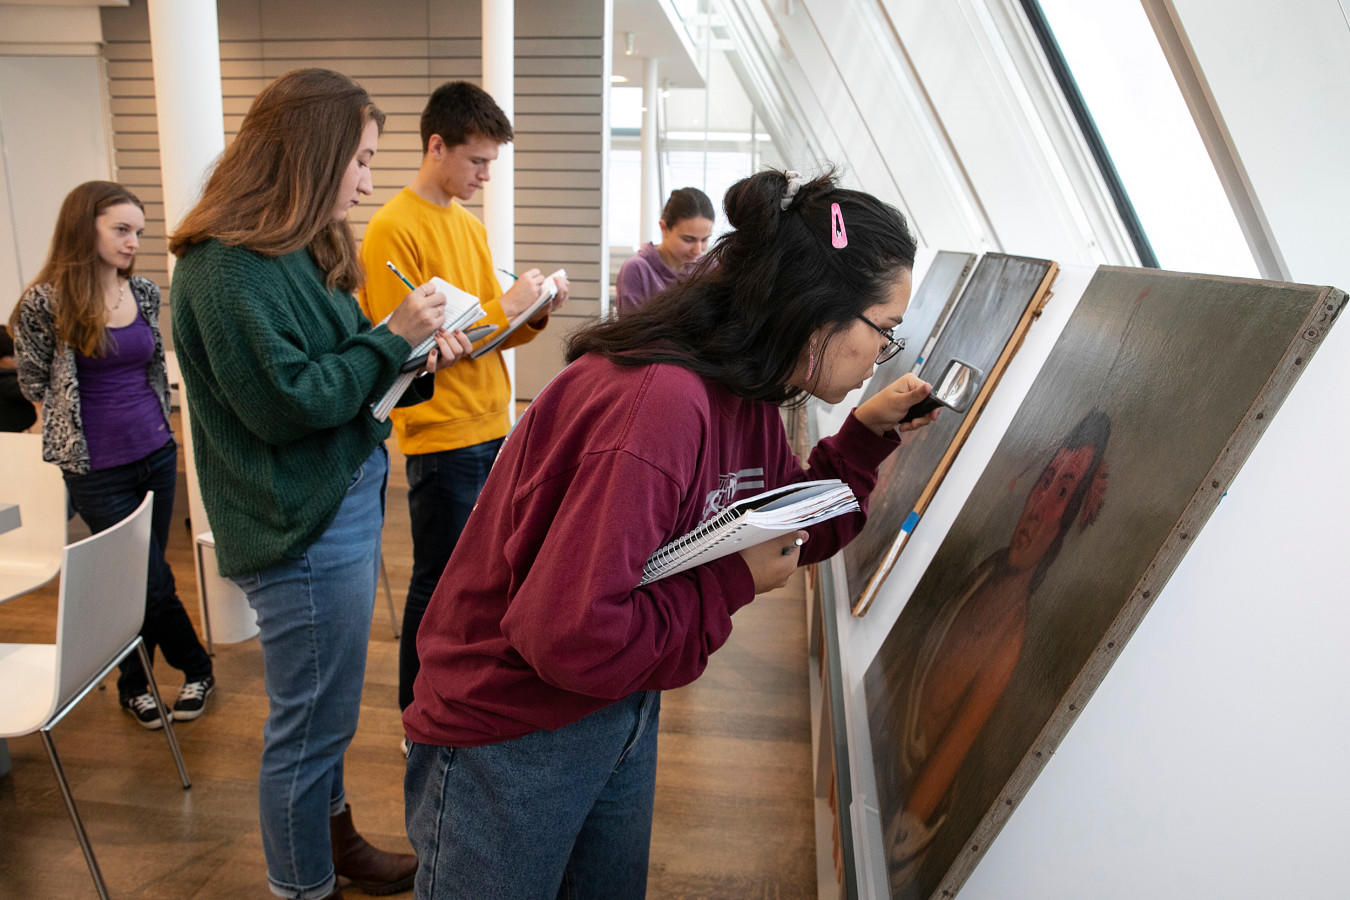 Emerald Mae GoingSnake (left) and four fellow students examine oil portraits of Native American leaders painted in the early 1800s.